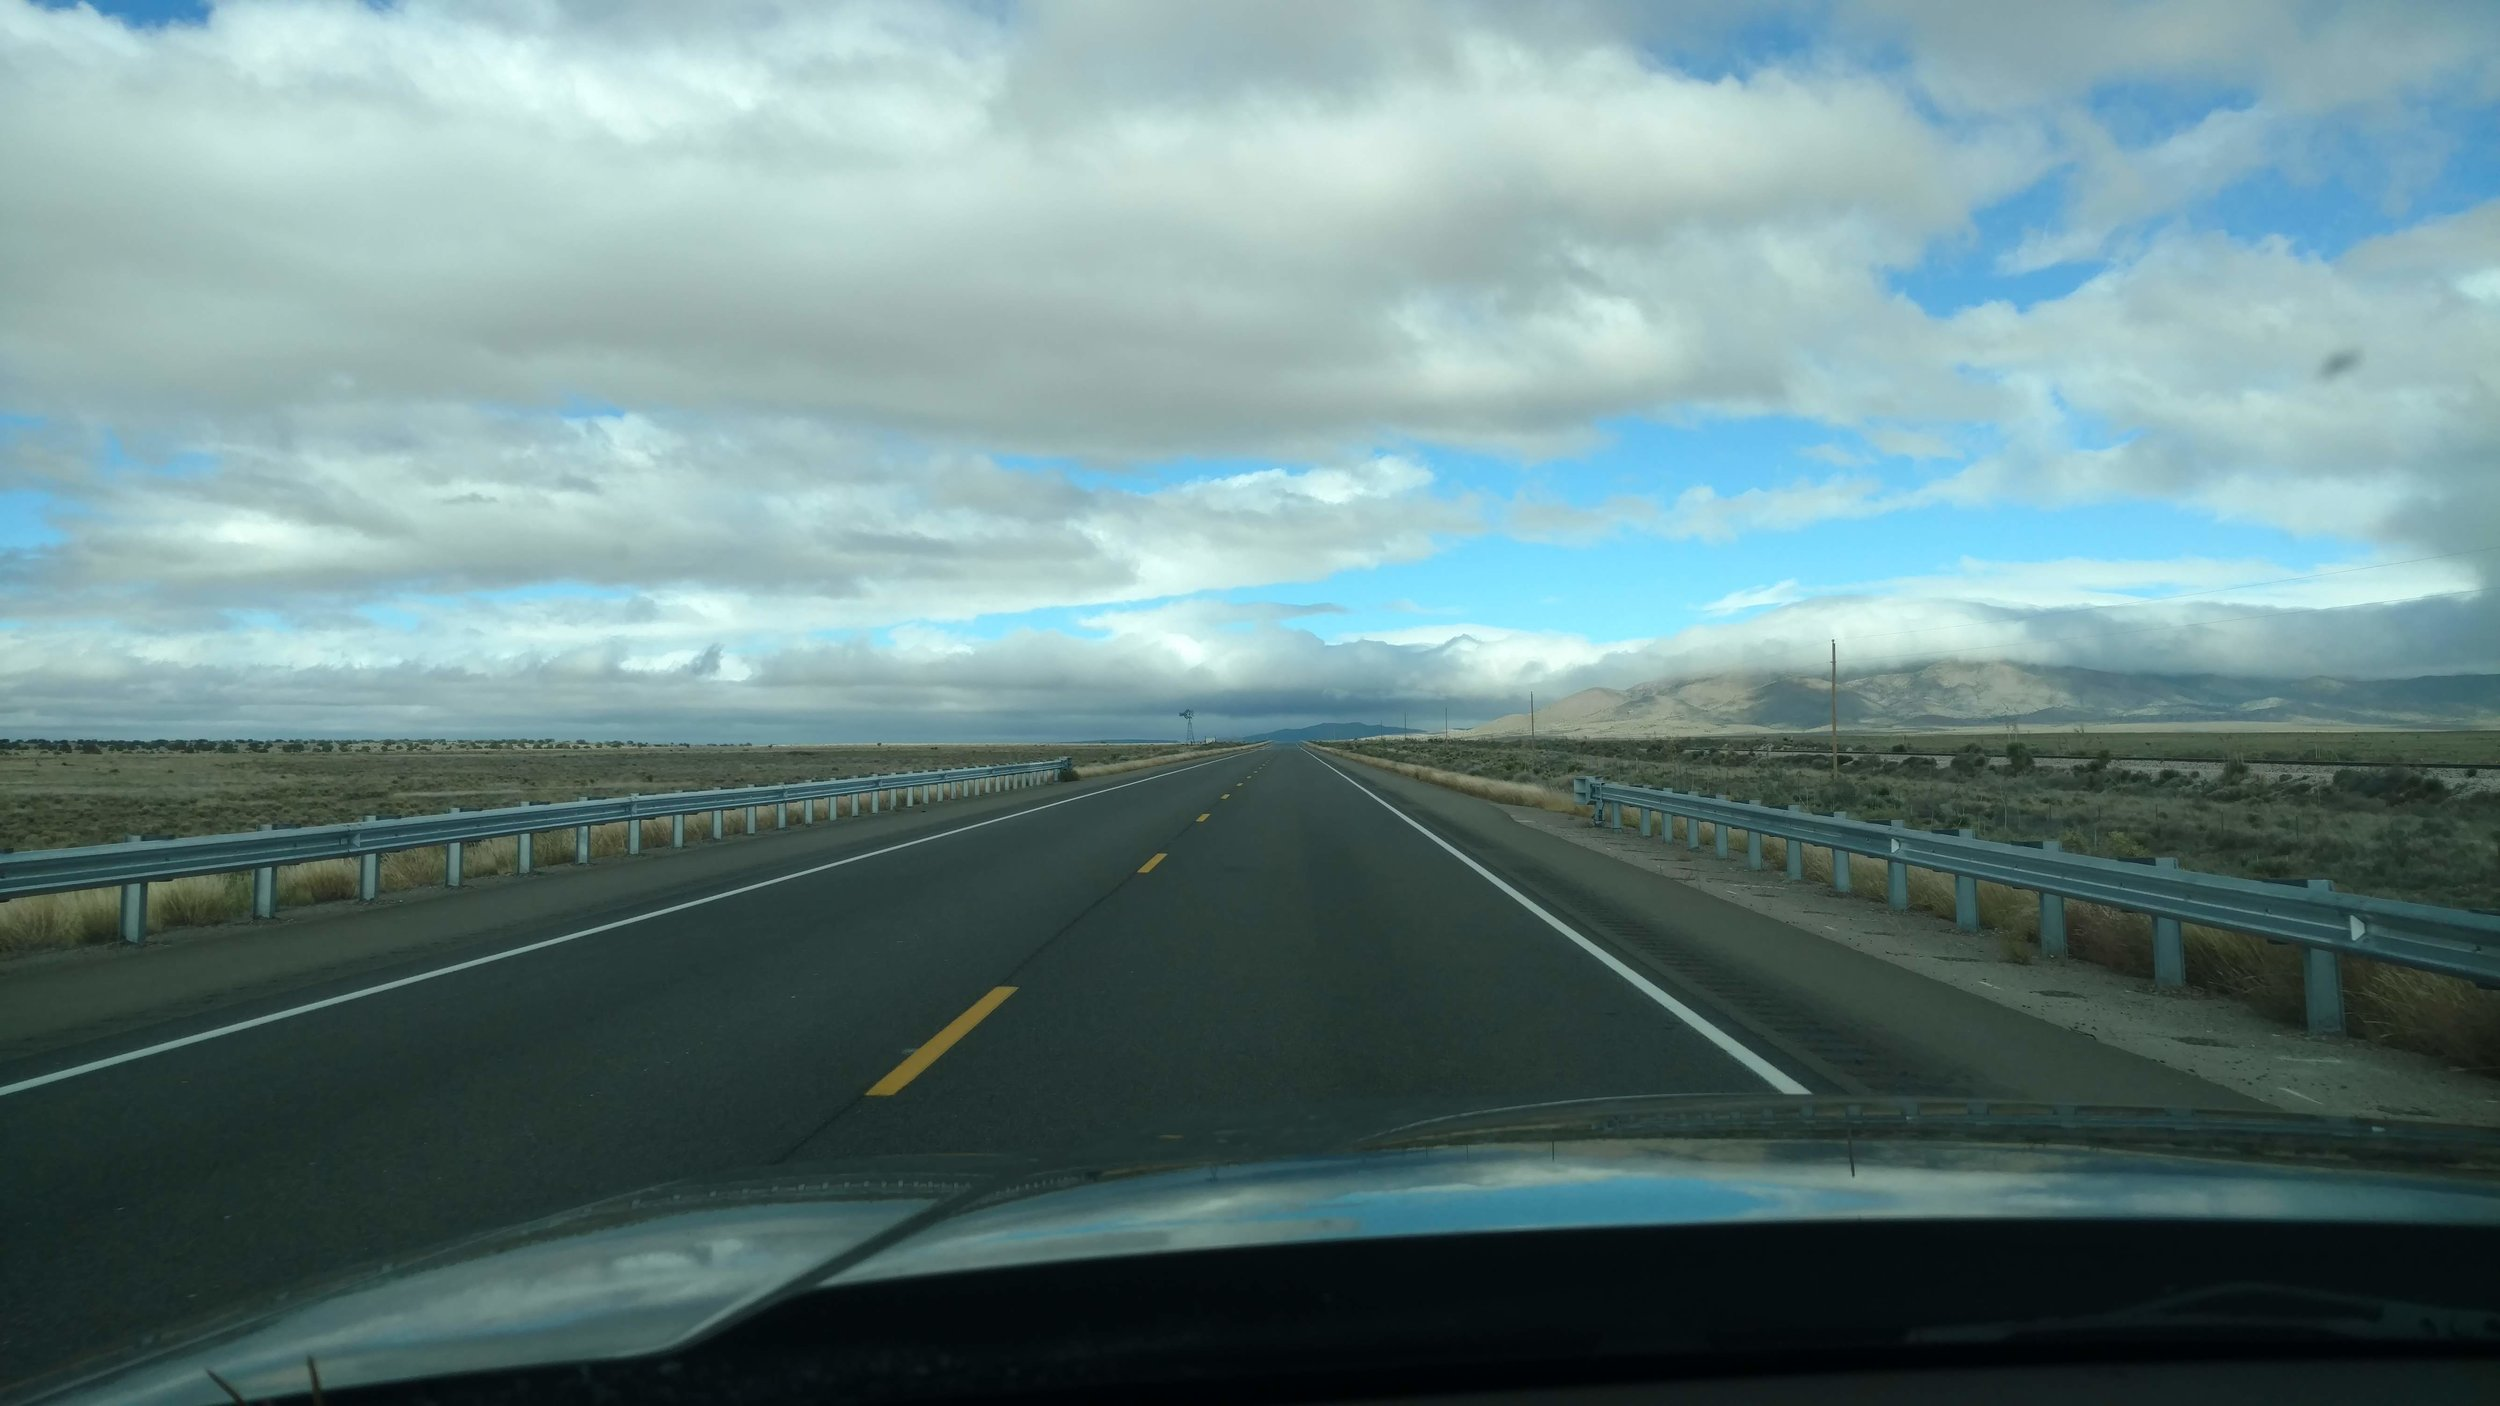 Only a few hundred more miles to elk camp…